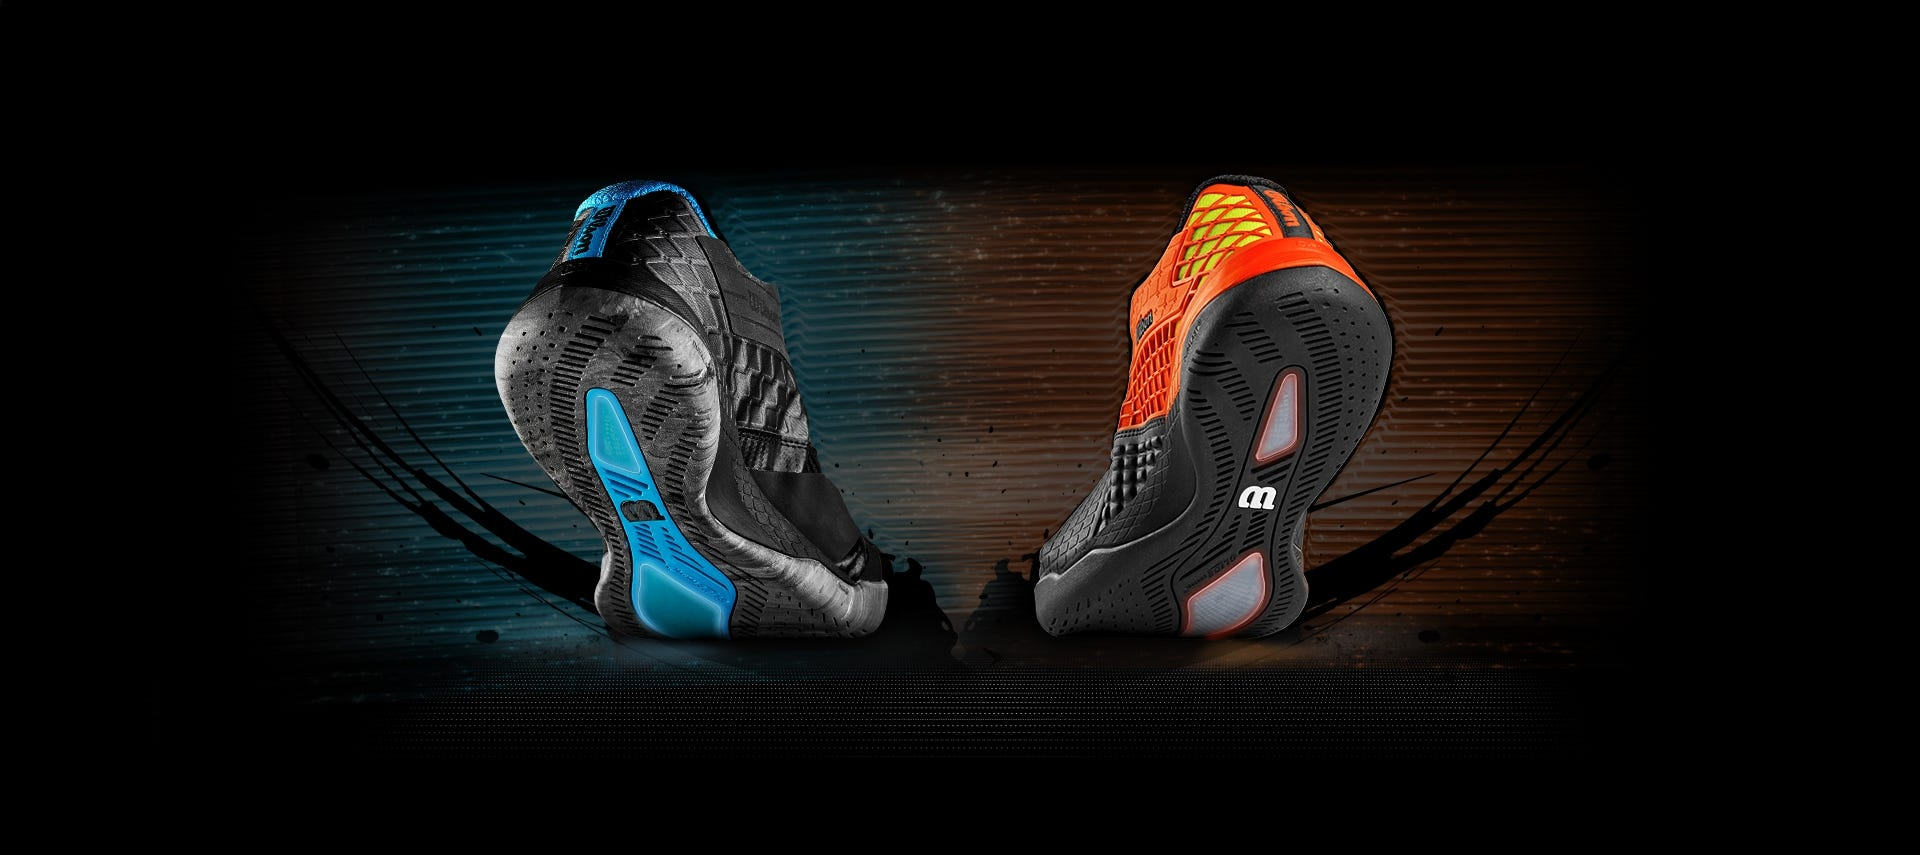 76d5da96e15ca Glide: The World's Only Tennis Shoes Made to Slide on Hardcourt